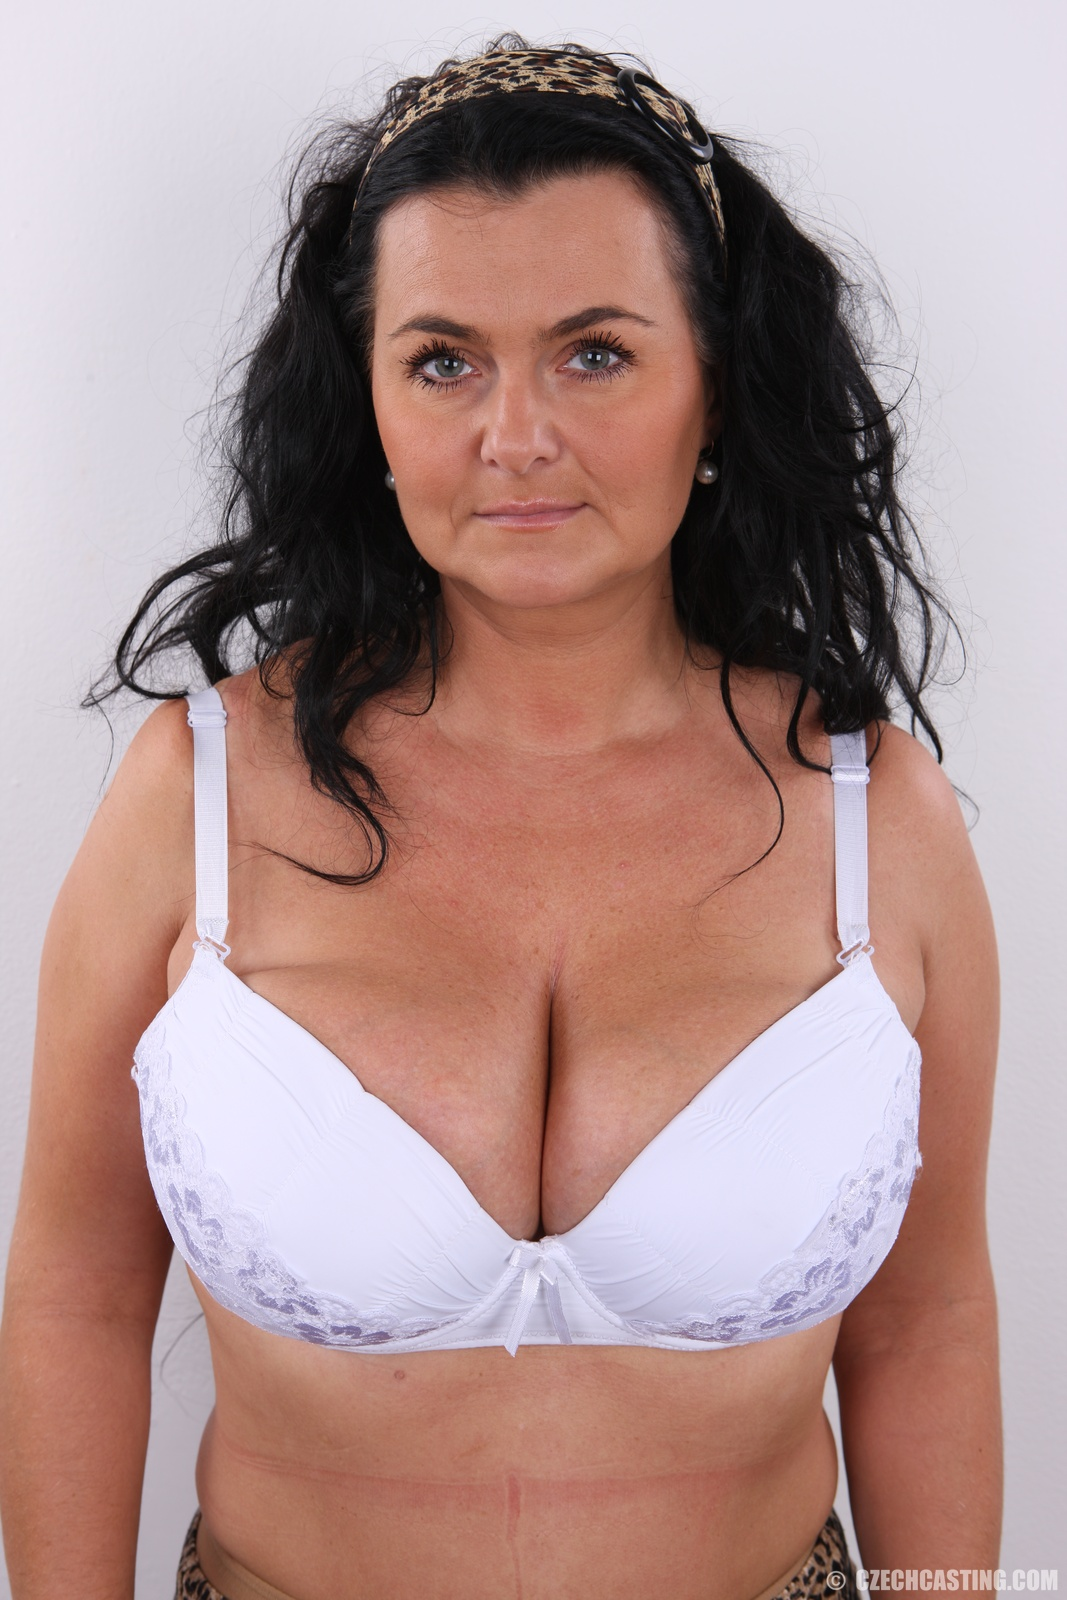 belzoni cougar women Belzoni's best 100% free milfs dating site meet thousands of single milfs in belzoni with mingle2's free personal ads and chat rooms our network of milfs women in belzoni is the perfect place to make friends or find a milf girlfriend in belzoni.